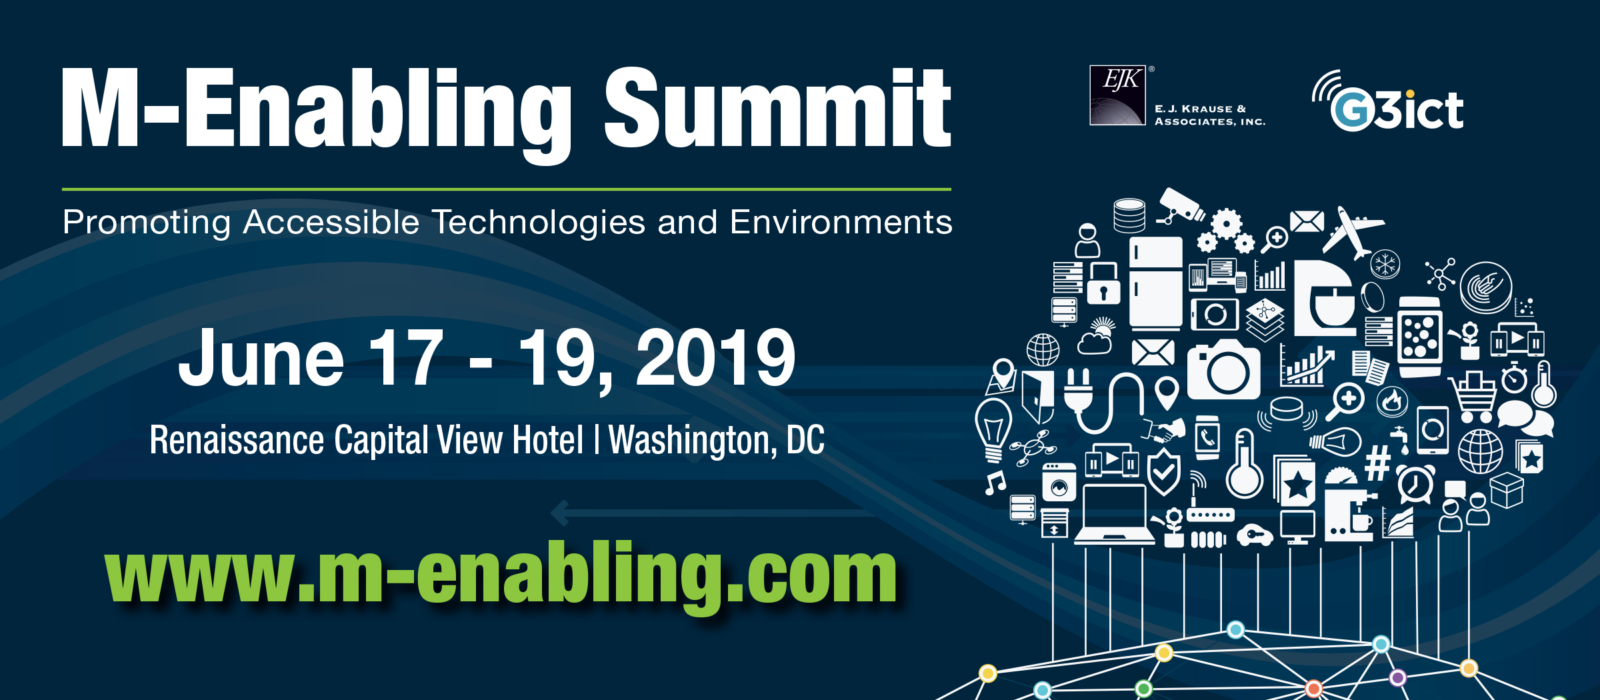 m-Enabling Summit June 17-19, 2019